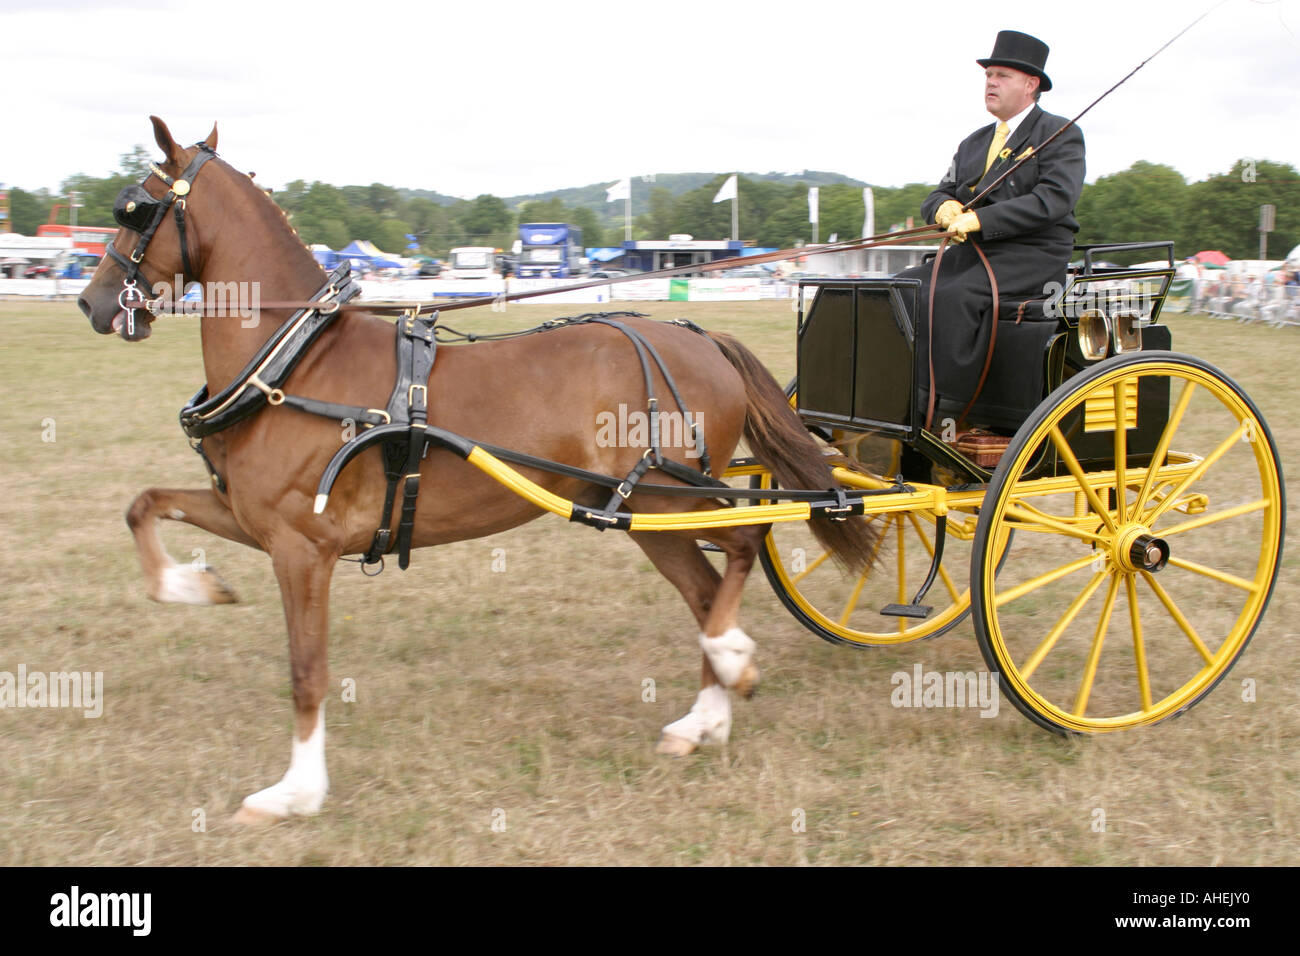 The Cranleigh Show August 2006 - Stock Image